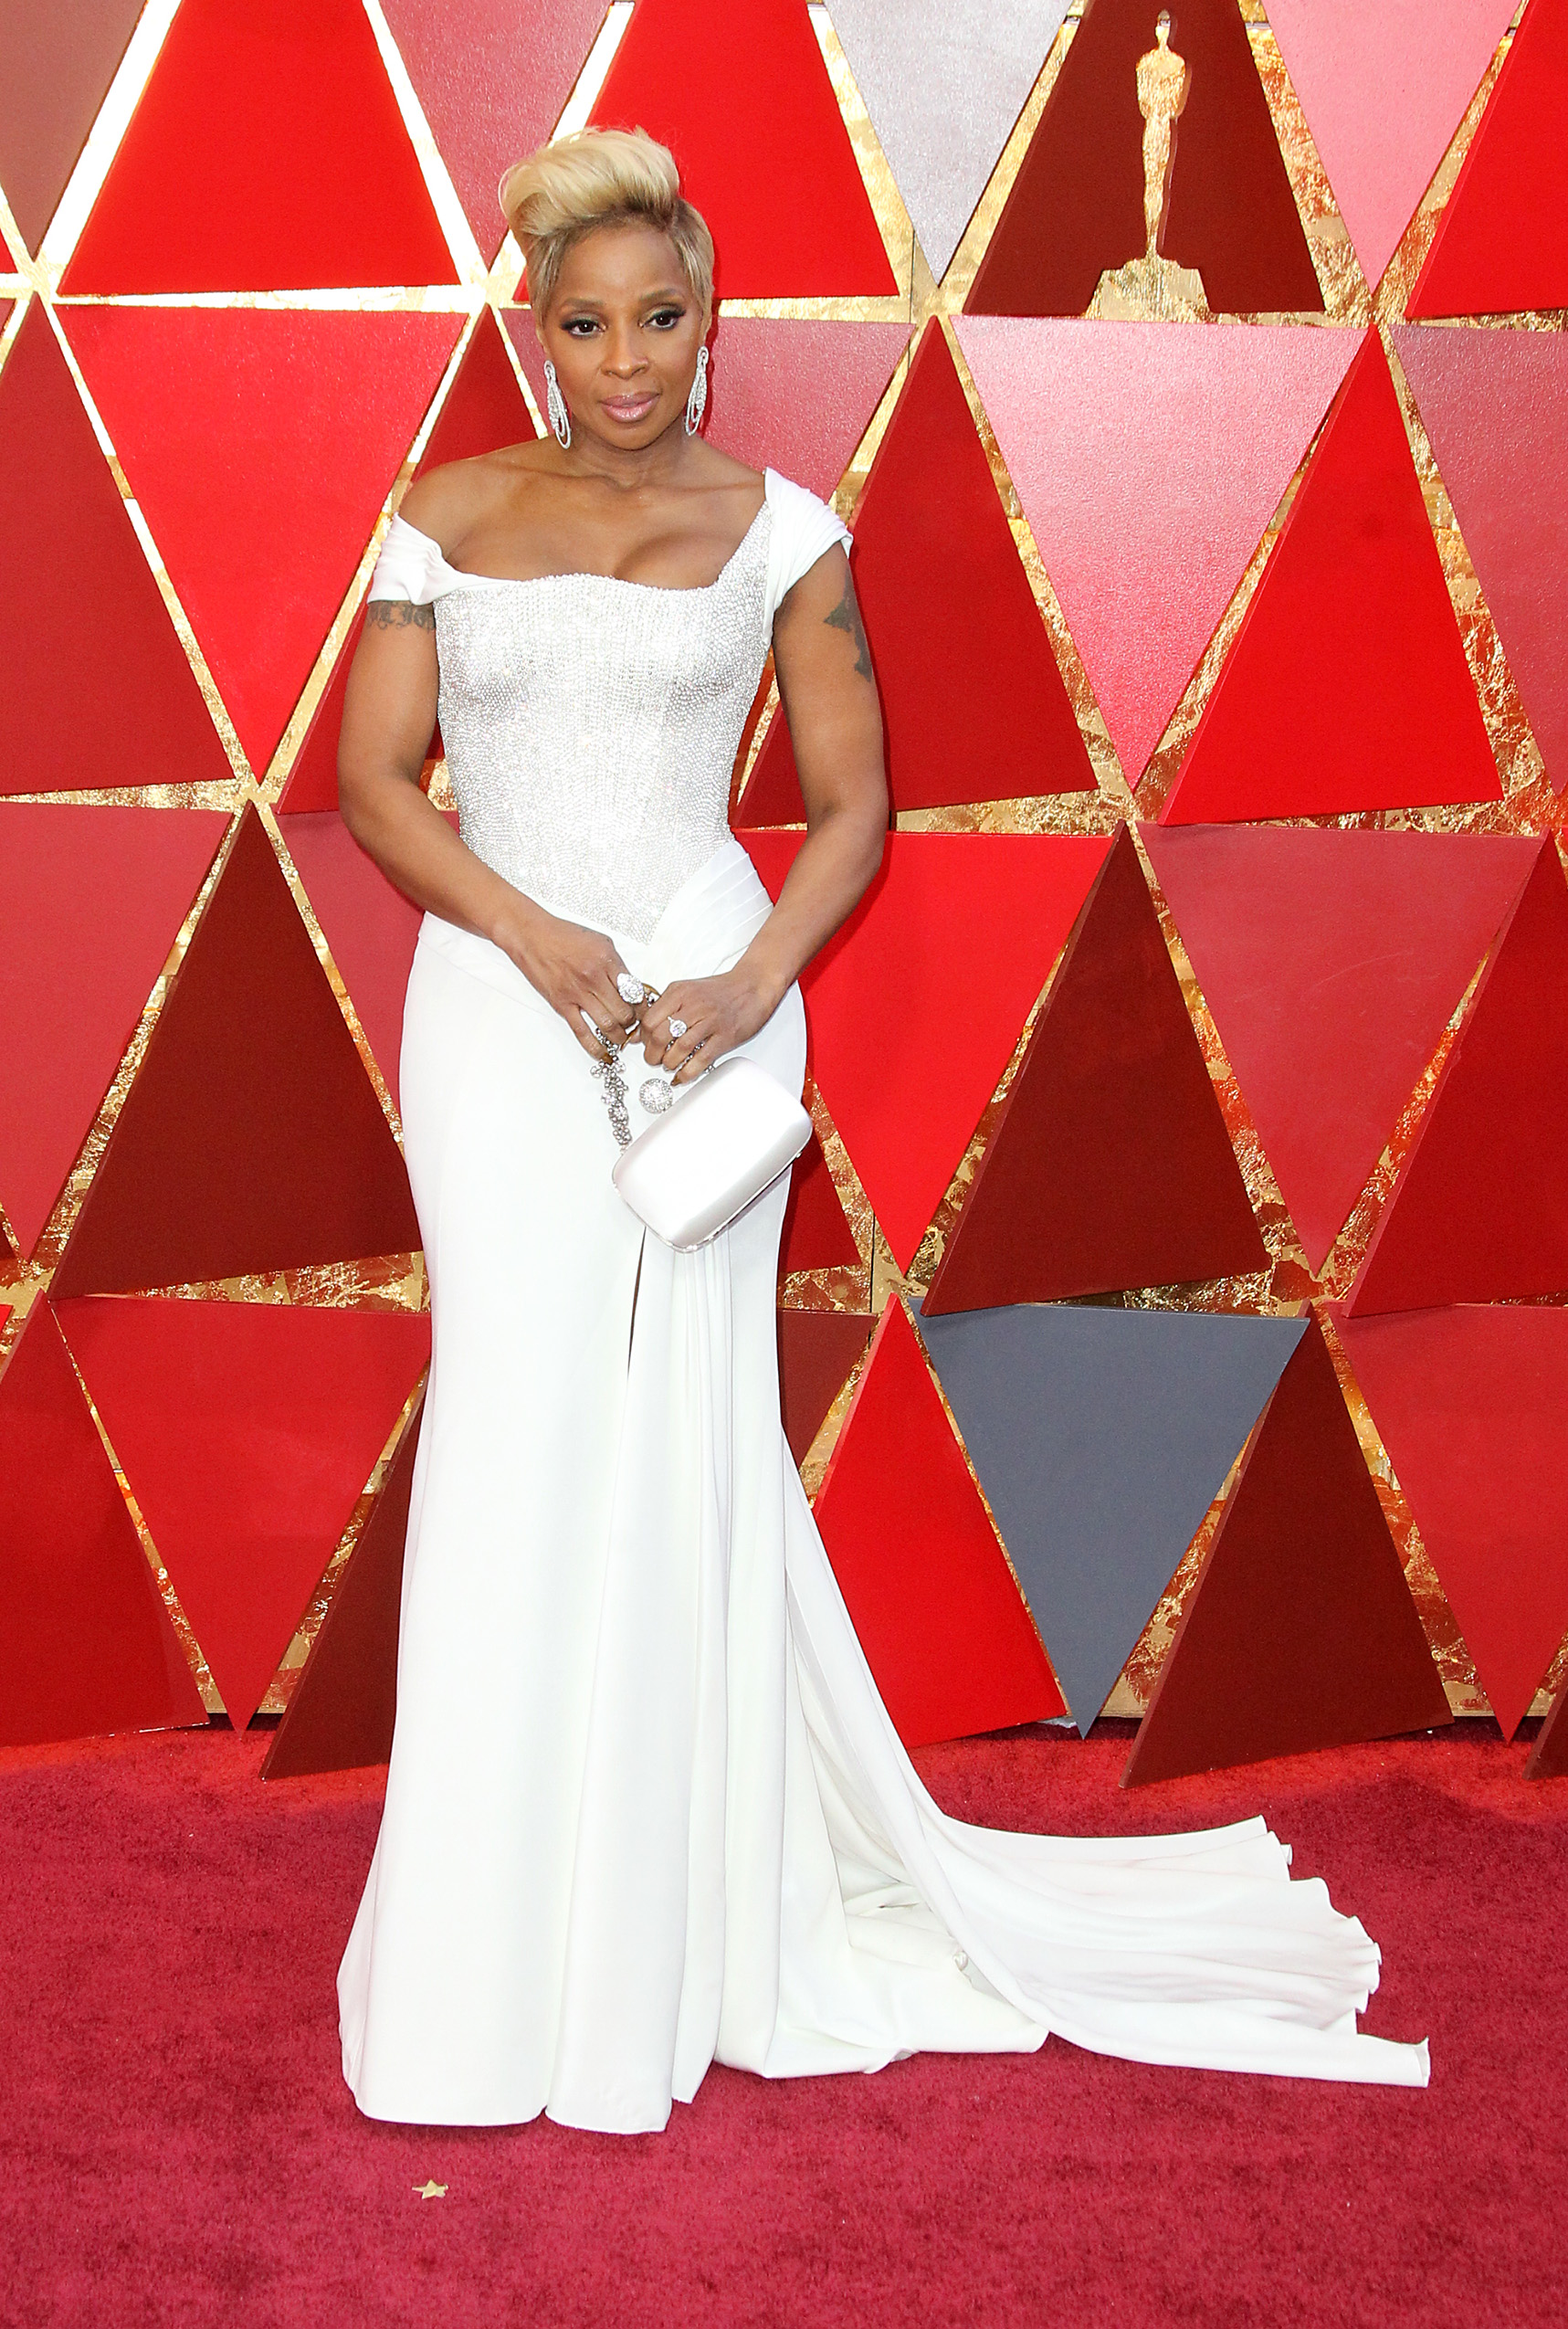 Mary J. Blige{&amp;nbsp;}arrives at the 90th Annual Academy Awards (Oscars) held at the Dolby Theater in Hollywood, California. (Image: Adriana M. Barraza/WENN.com){&amp;nbsp;}<p></p>